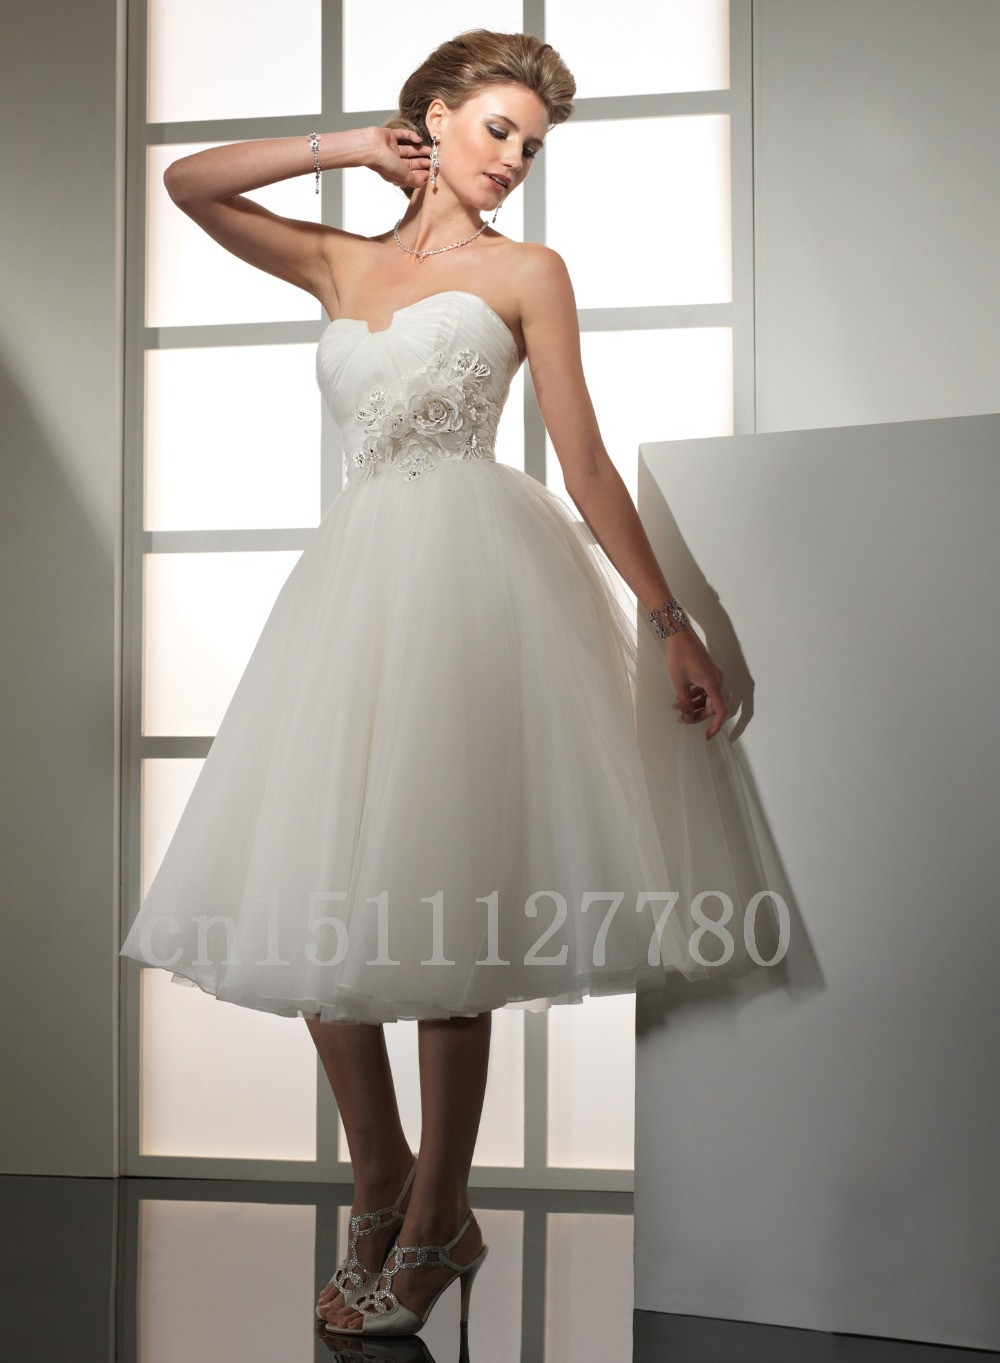 Cheap Tea Length Wedding Dresses | Dress images